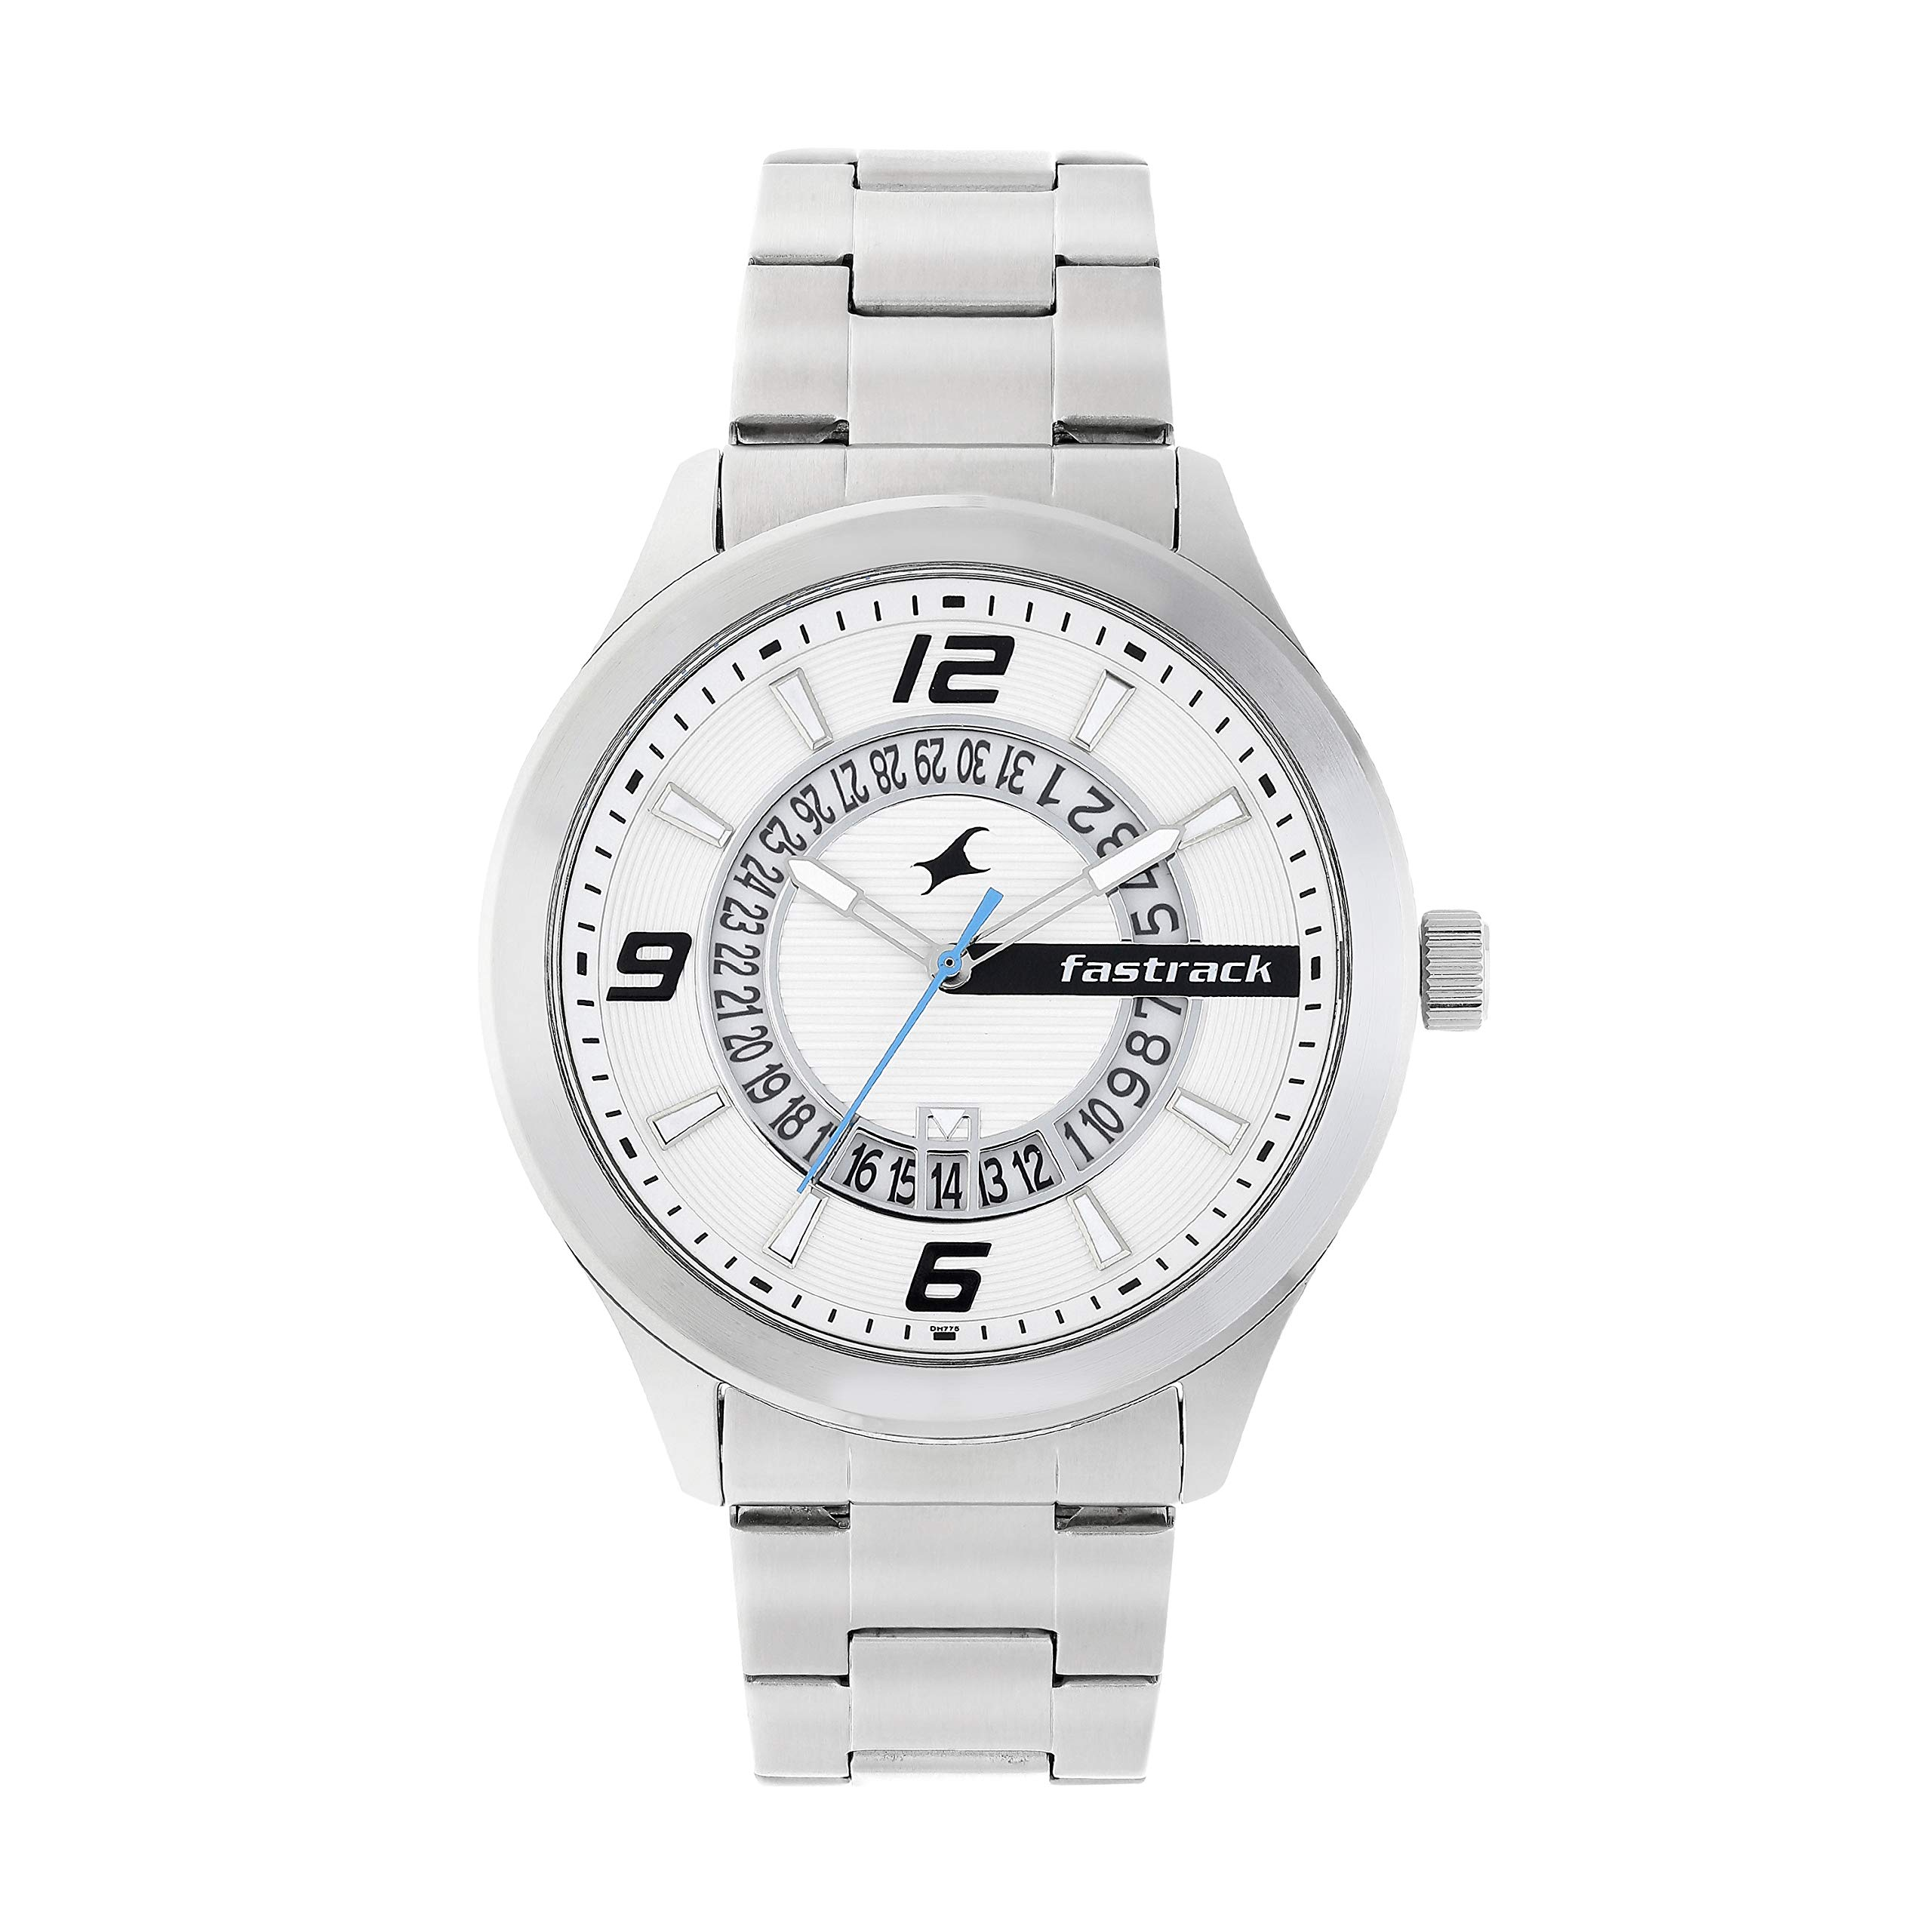 Fastrack Analog White Dial Men's Watch-38050SM01 (B07MDVVG17) Amazon Price History, Amazon Price Tracker